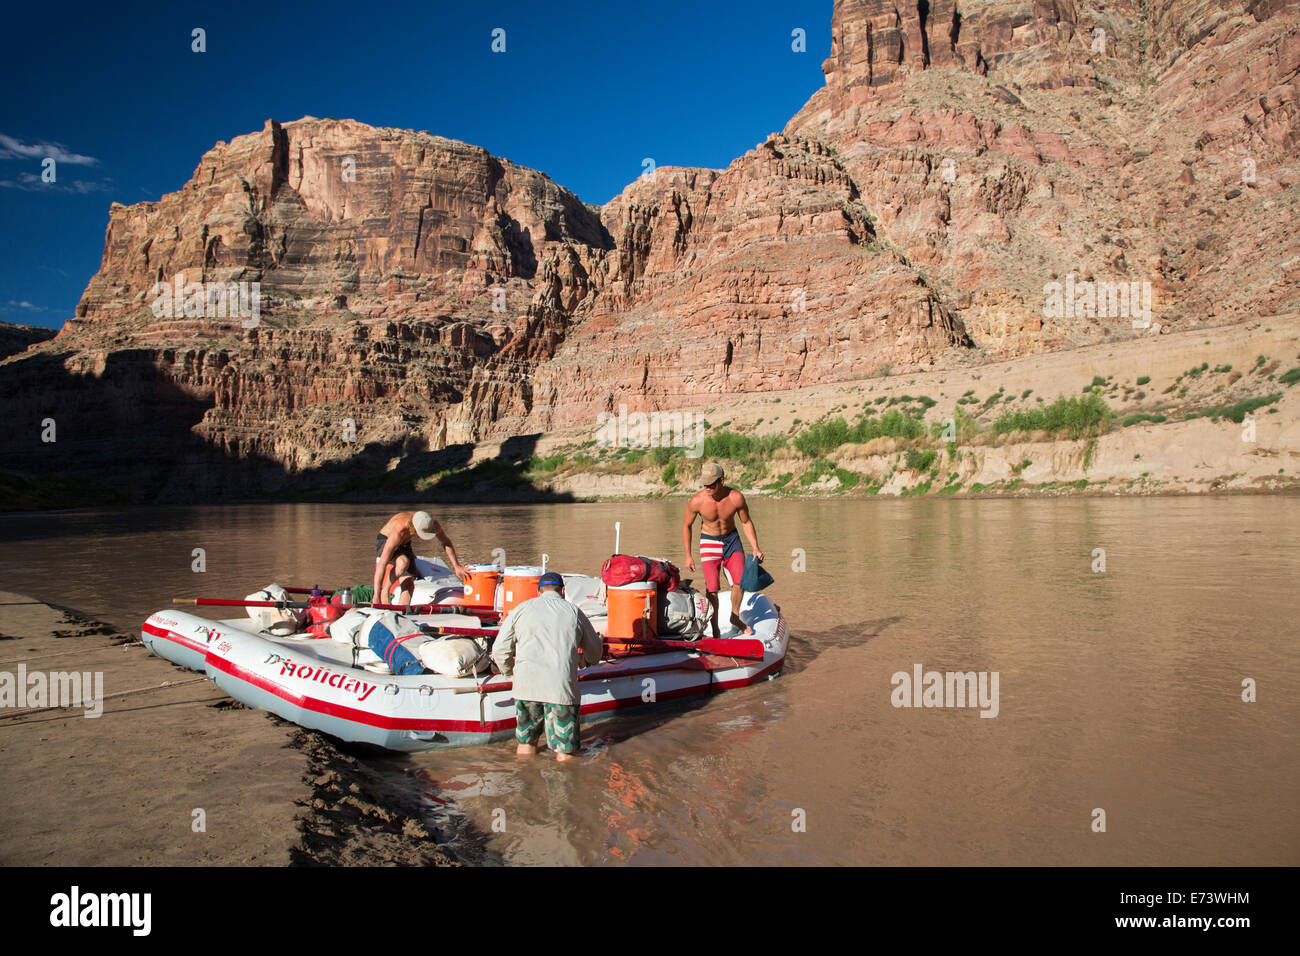 Canyonlands National Park, Utah - Raft guides secure equipment and supplies in rafts before leaving an overnight - Stock Image